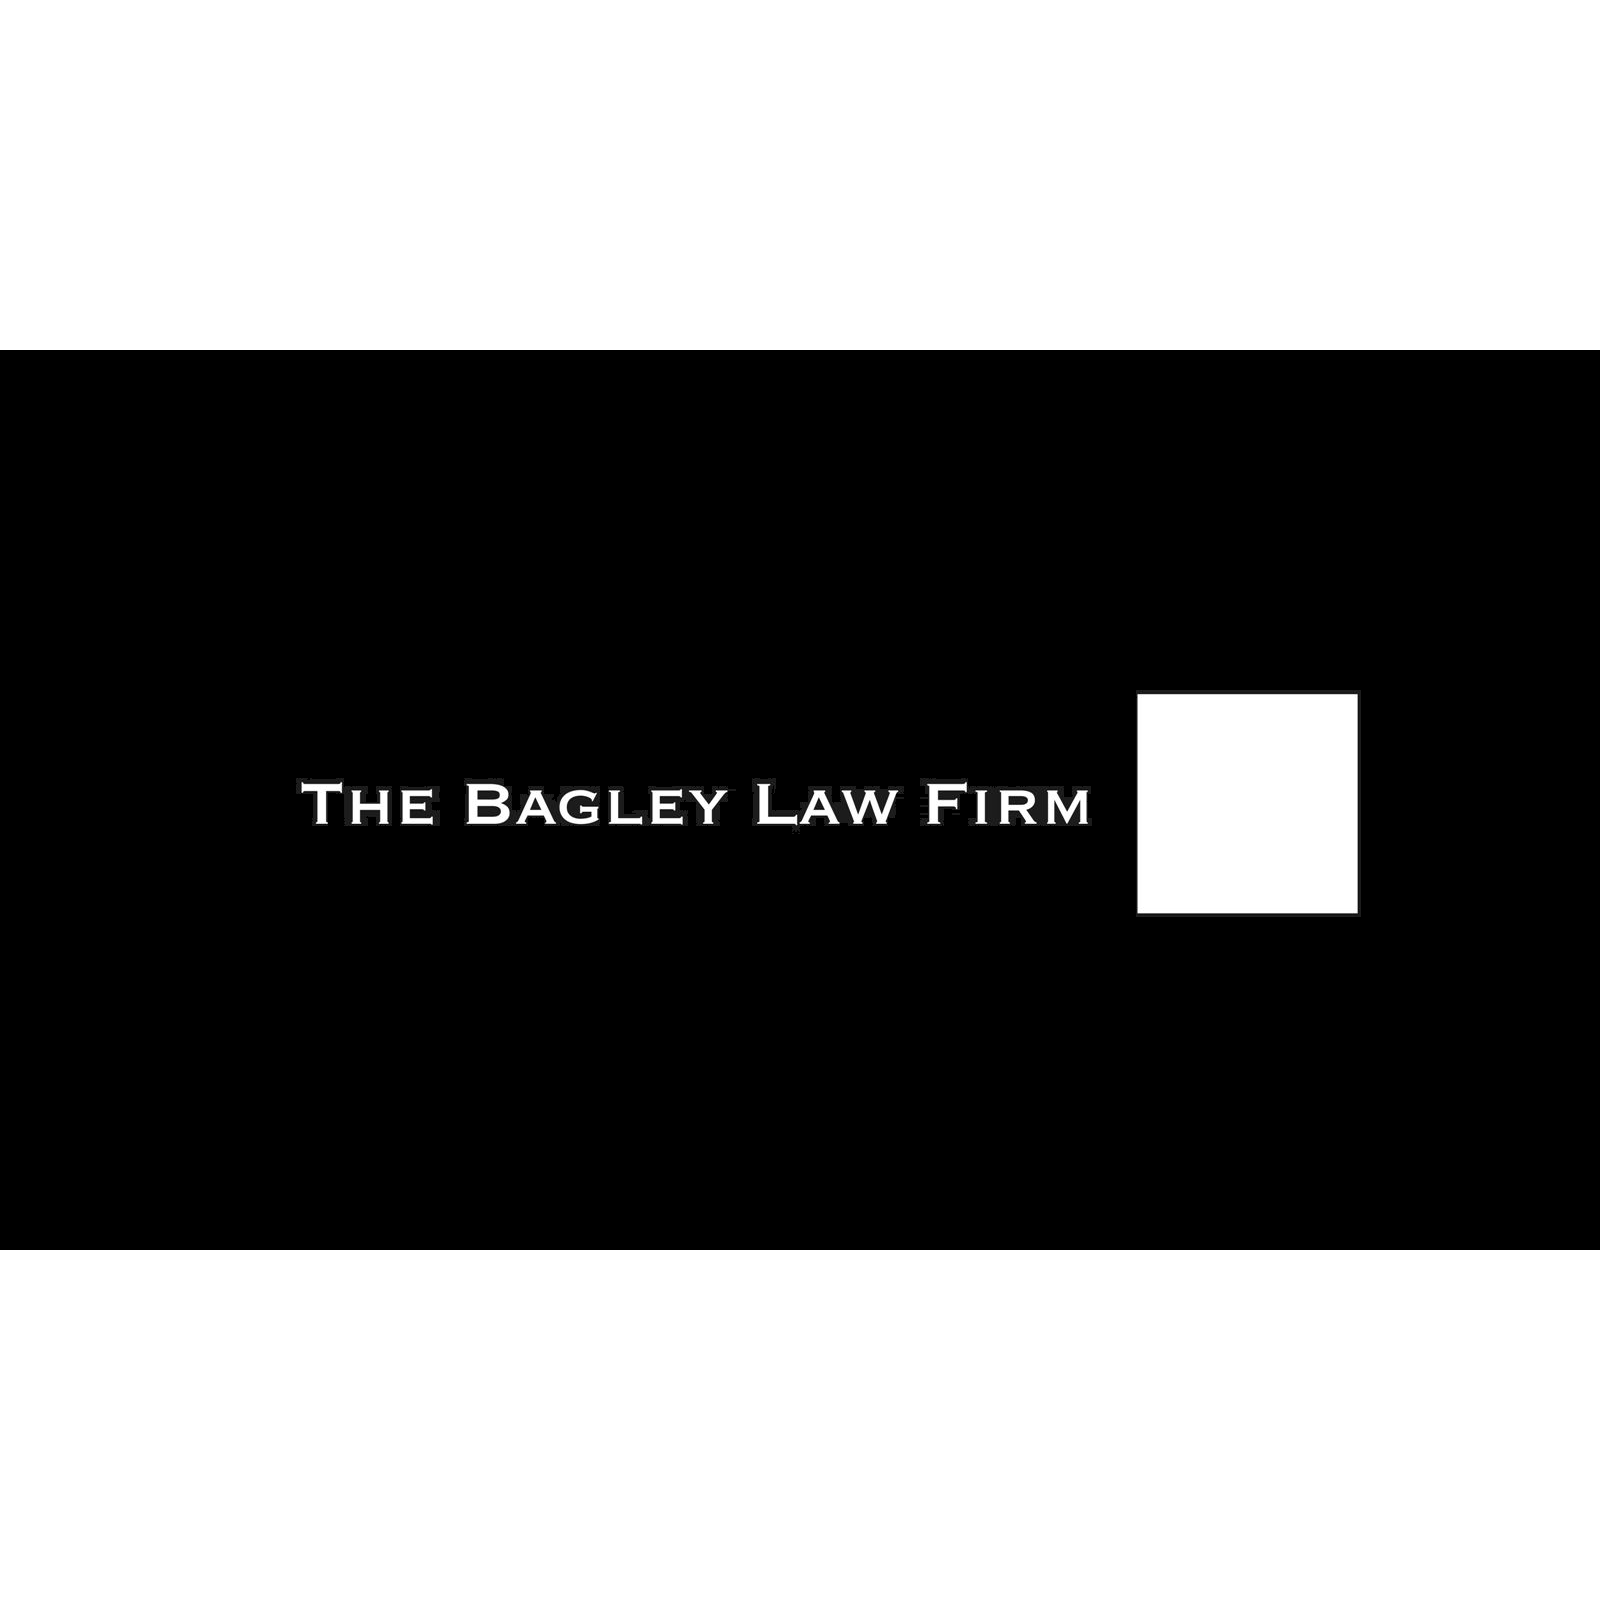 The Bagley Law Firm - Longmont, CO 80501 - (303)684-9588 | ShowMeLocal.com